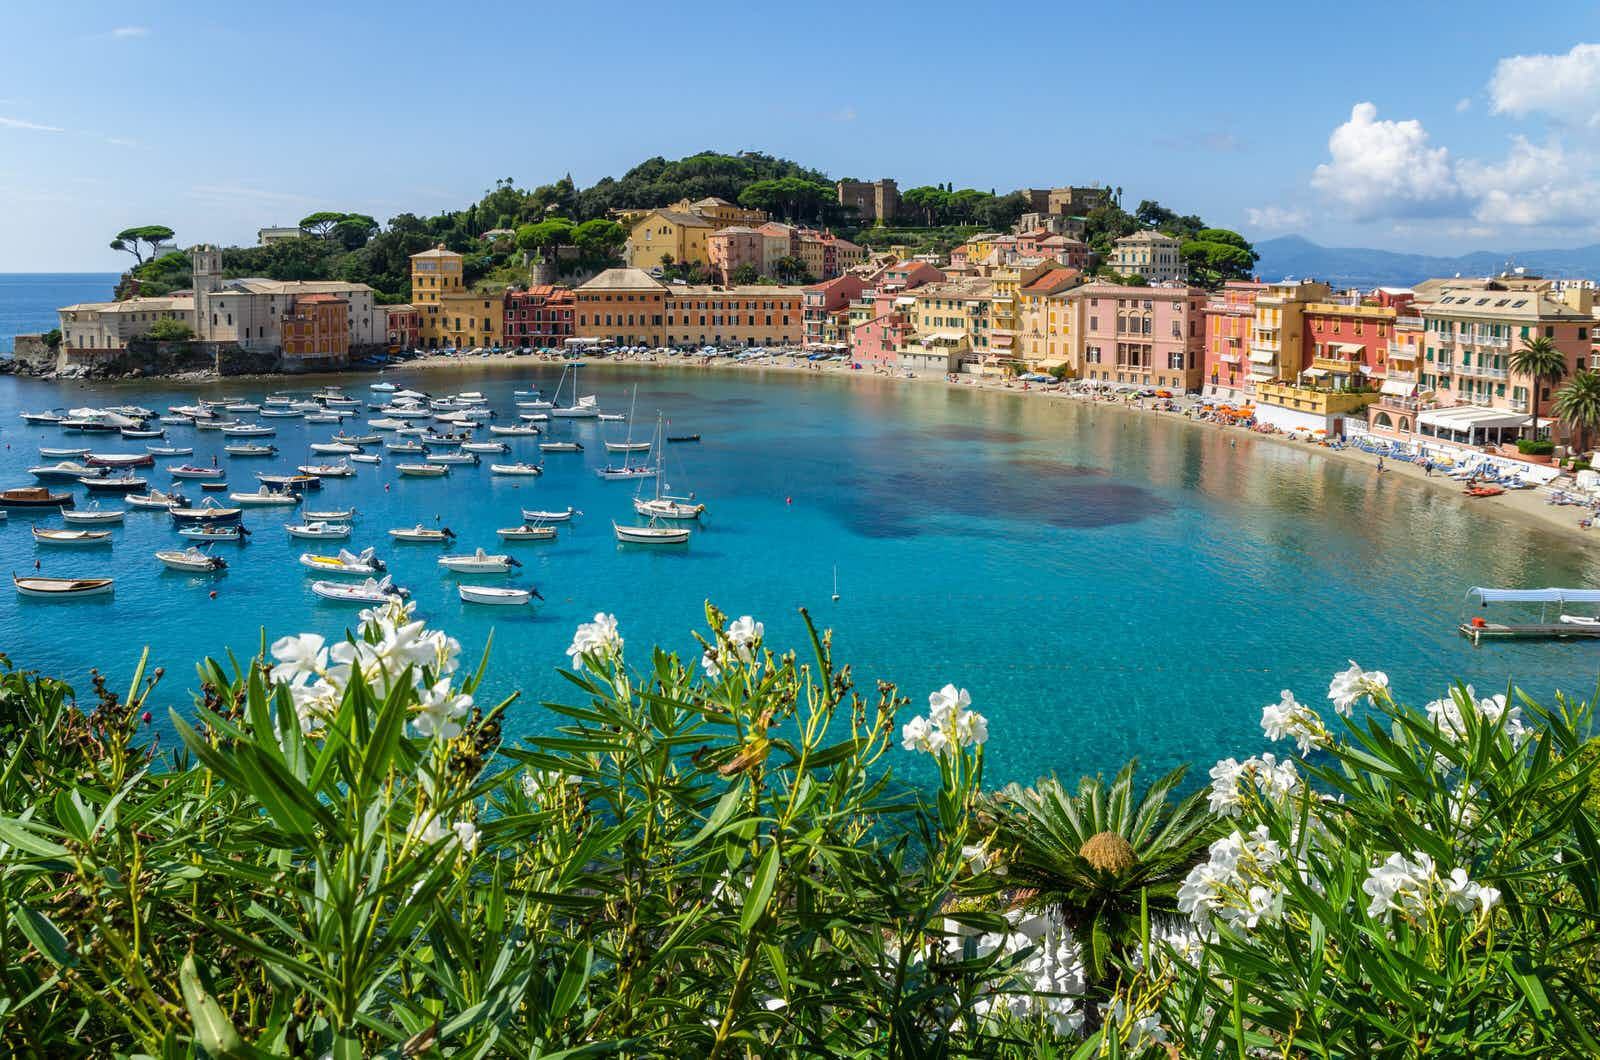 Sestri Levante is found approximately halfway between Genoa and La Spezia. The town has two bays: Baia delle Favole, (Bay of the Fables), and Baia del Silenzio, the (Bay of Silence).